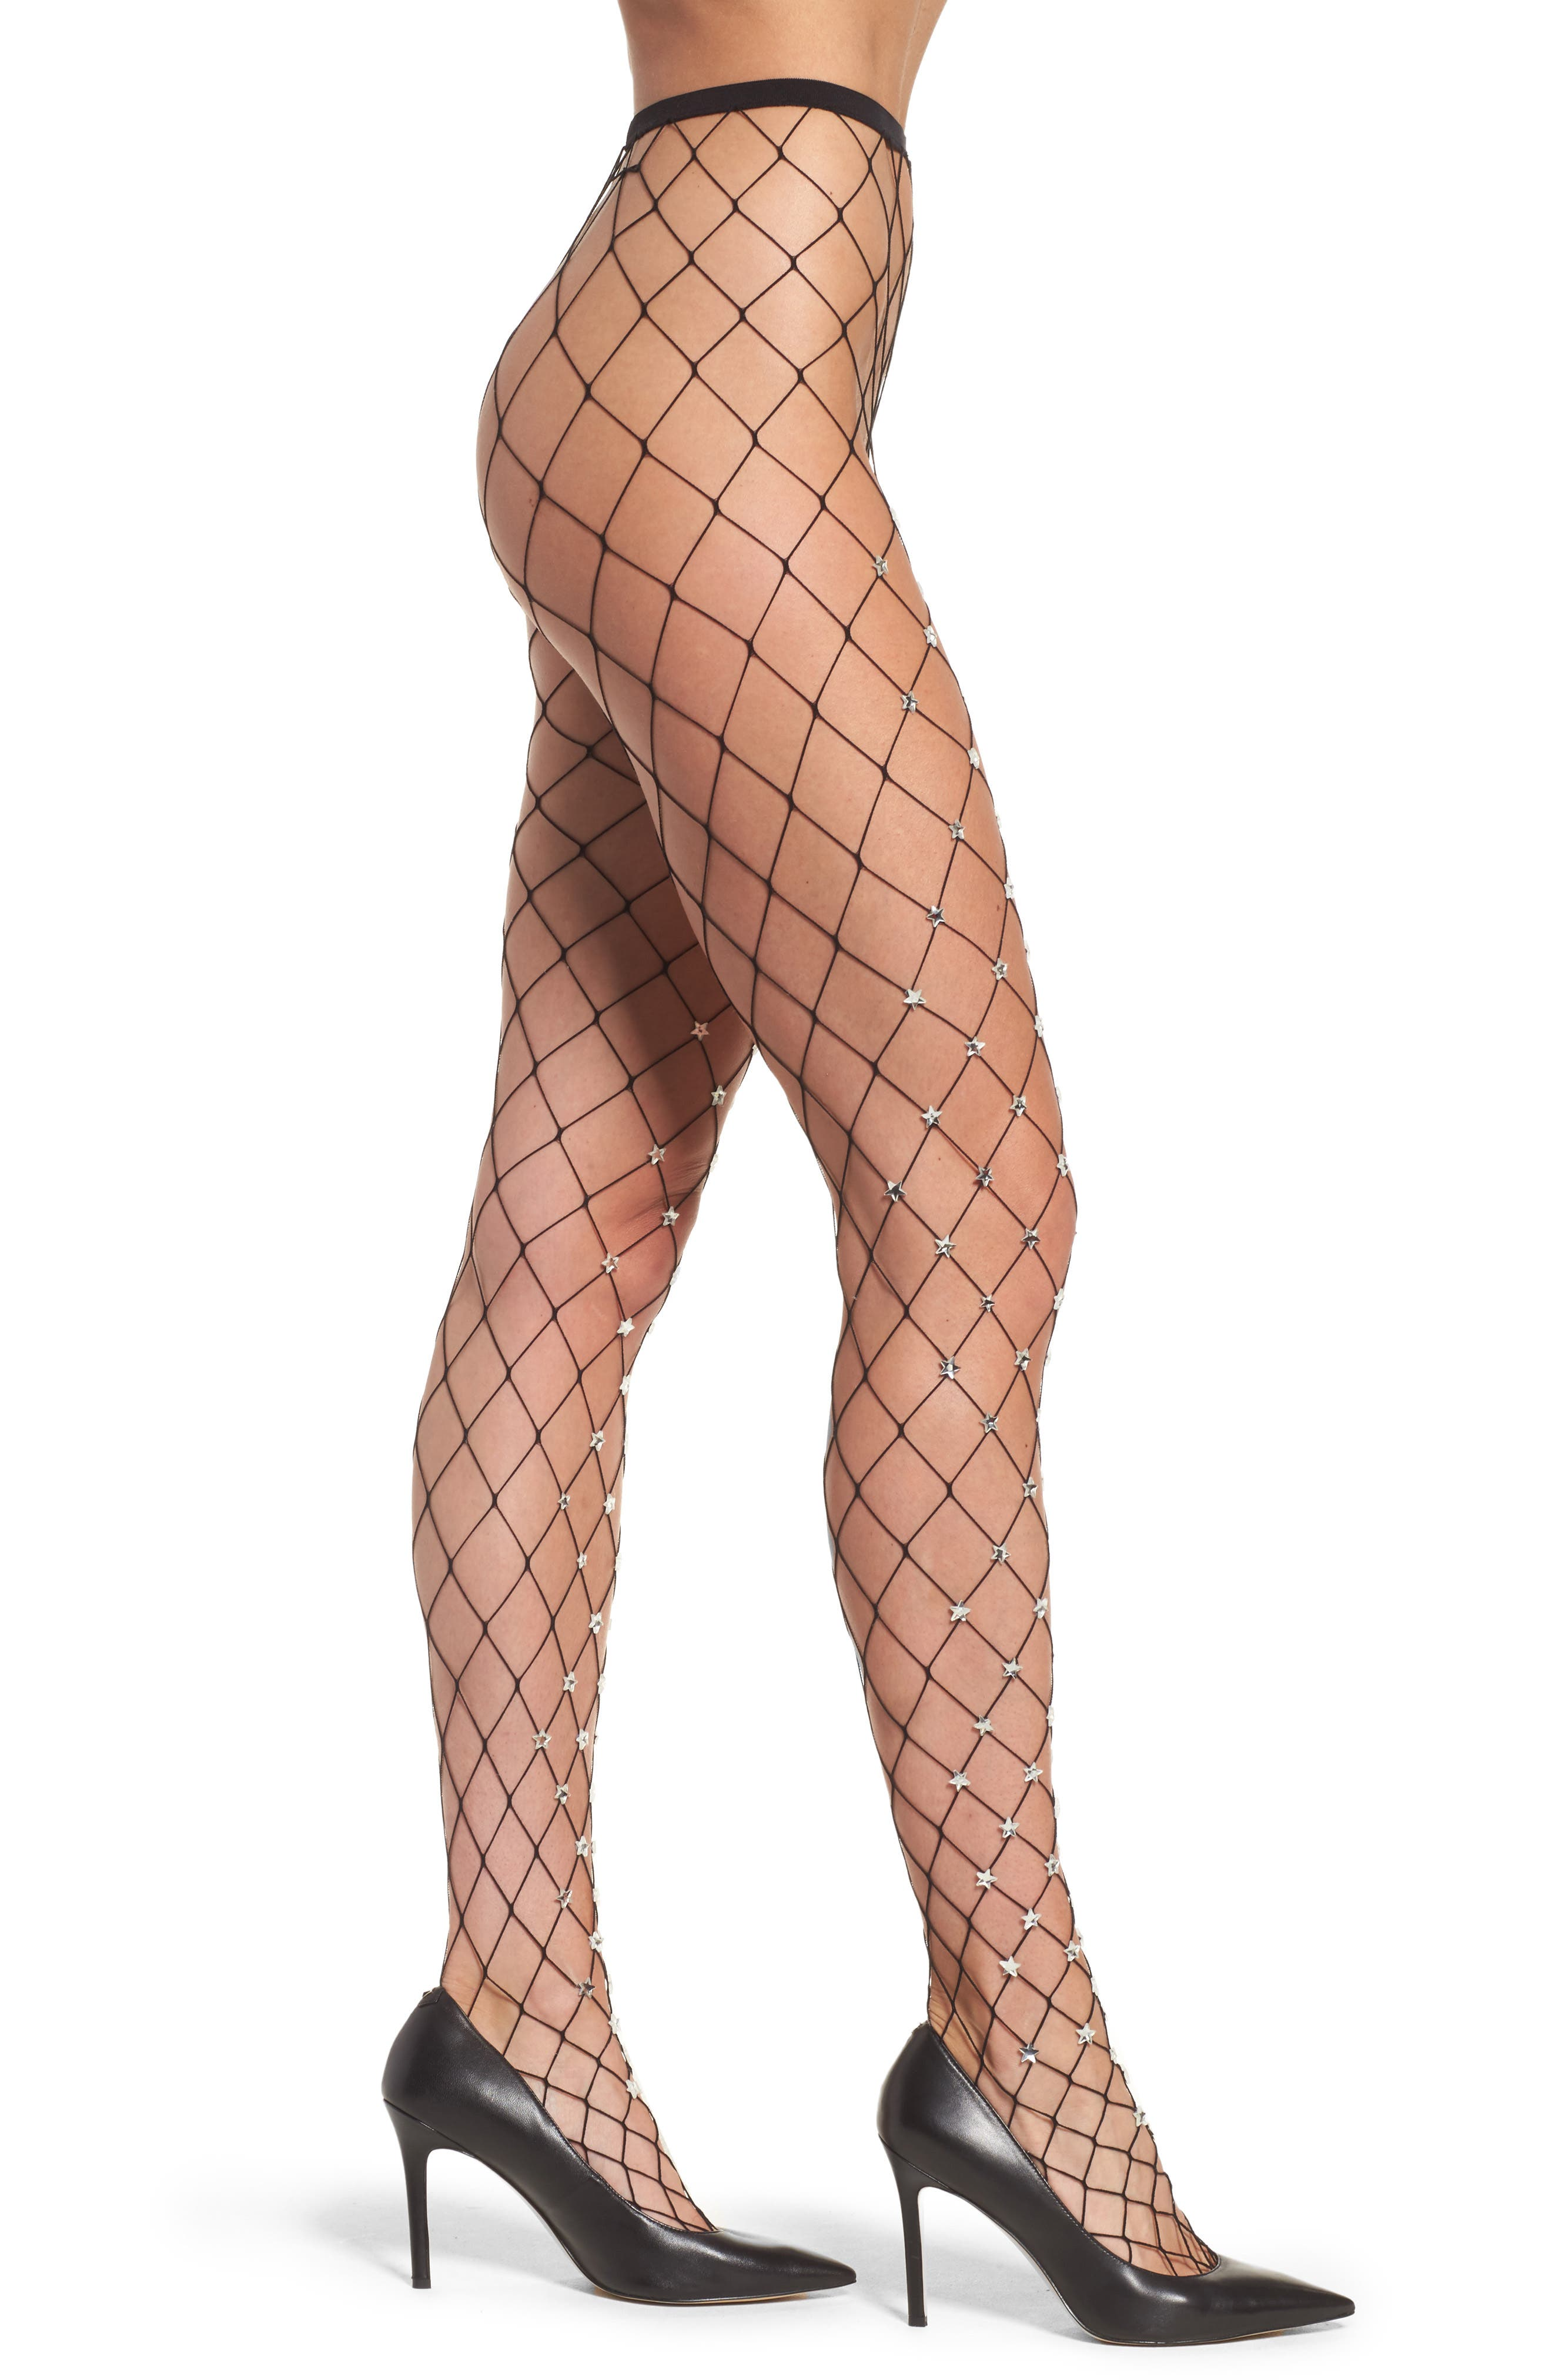 Silver Starry Fishnet Tights,                             Main thumbnail 1, color,                             001